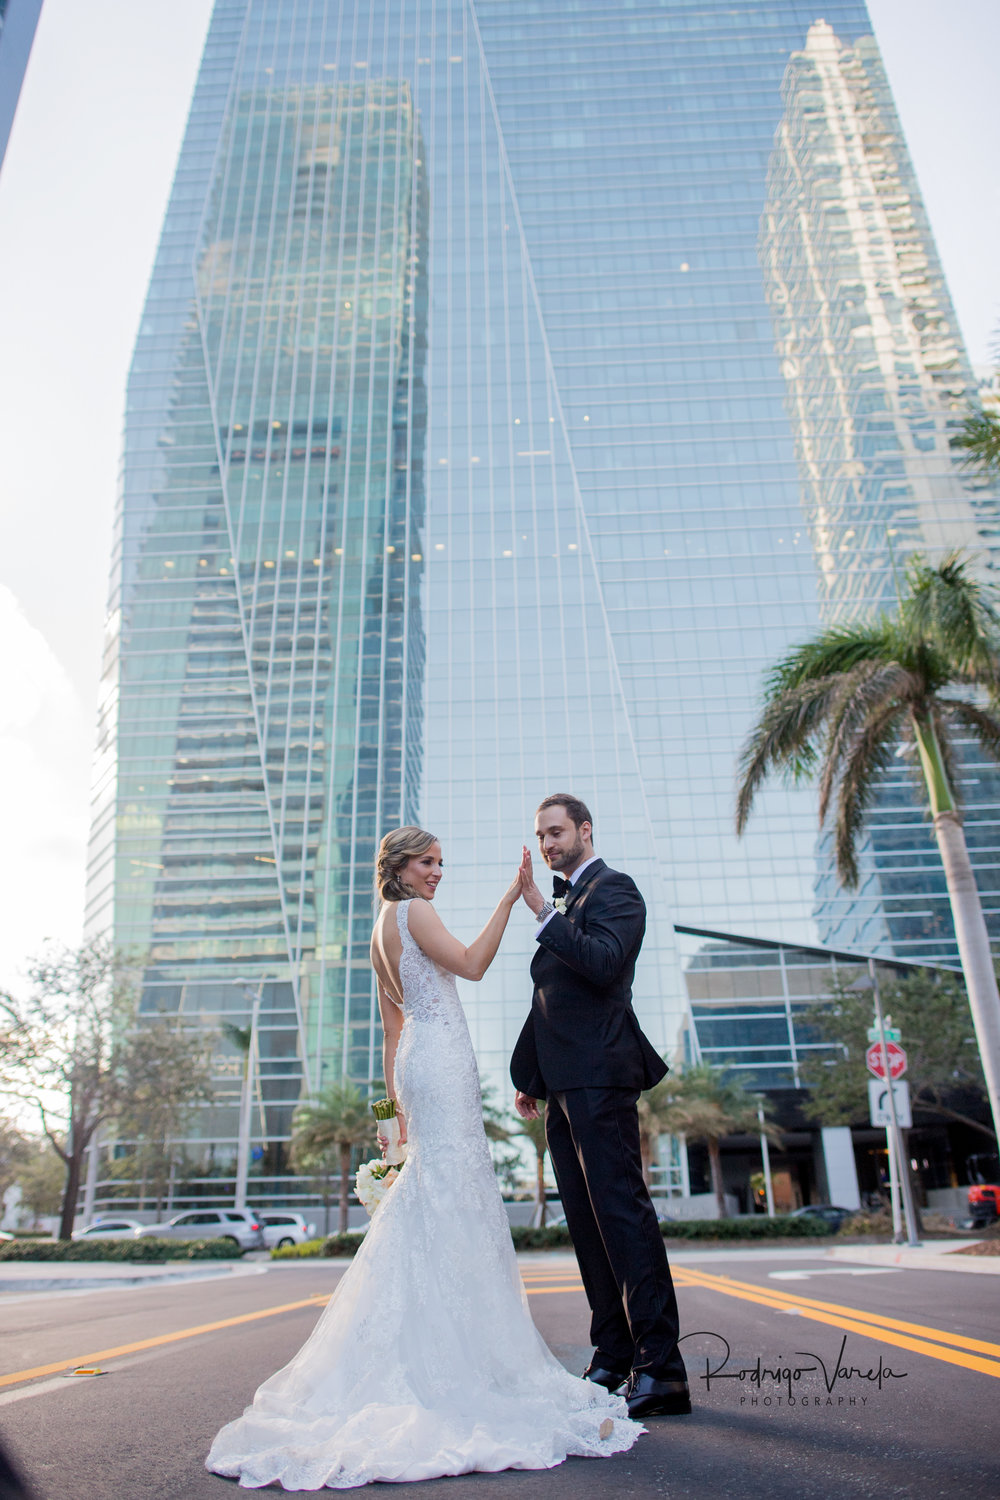 Patricia & Jonathan - Nothing beats the luxury of the Four Seasons Hotel in Brickell, Miami. With the pool deck and ballroom high up in to the sky, the city views were unbeatable.